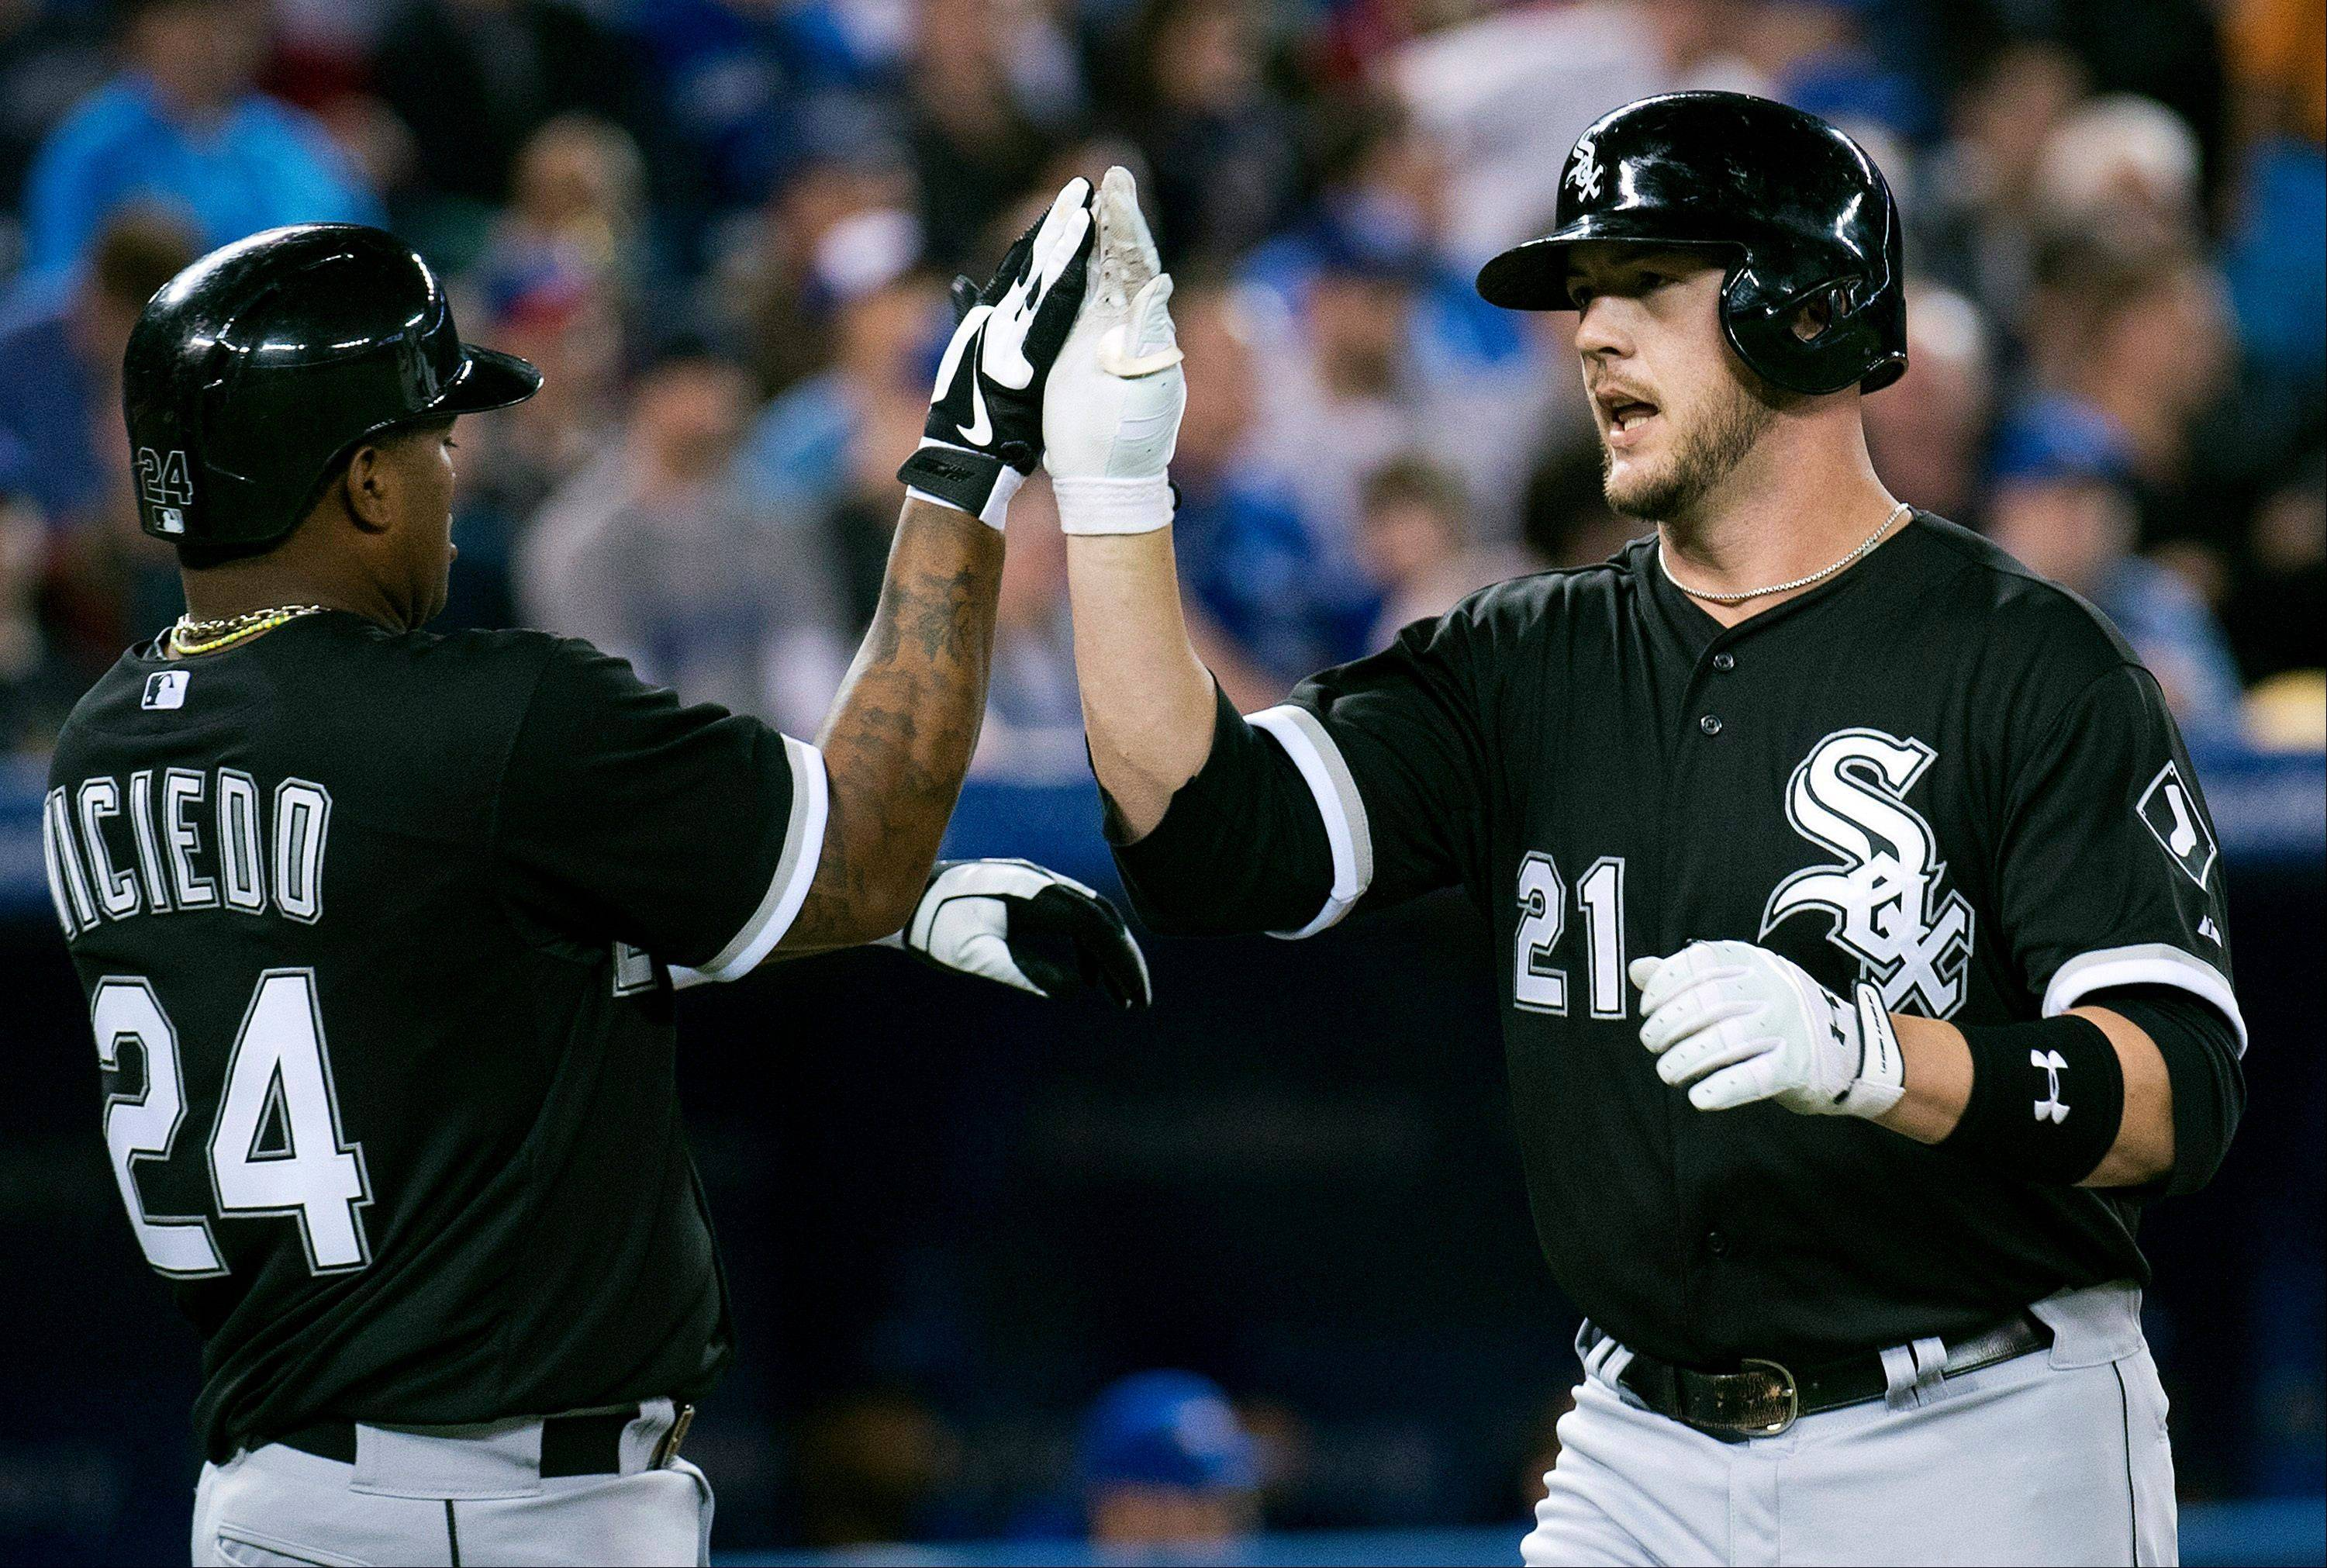 Tyler Flowers, celebrating a 3-run homer with Dayan Viciedo last season, remains one of the White Sox� top two catchers along with Josh Phegley.